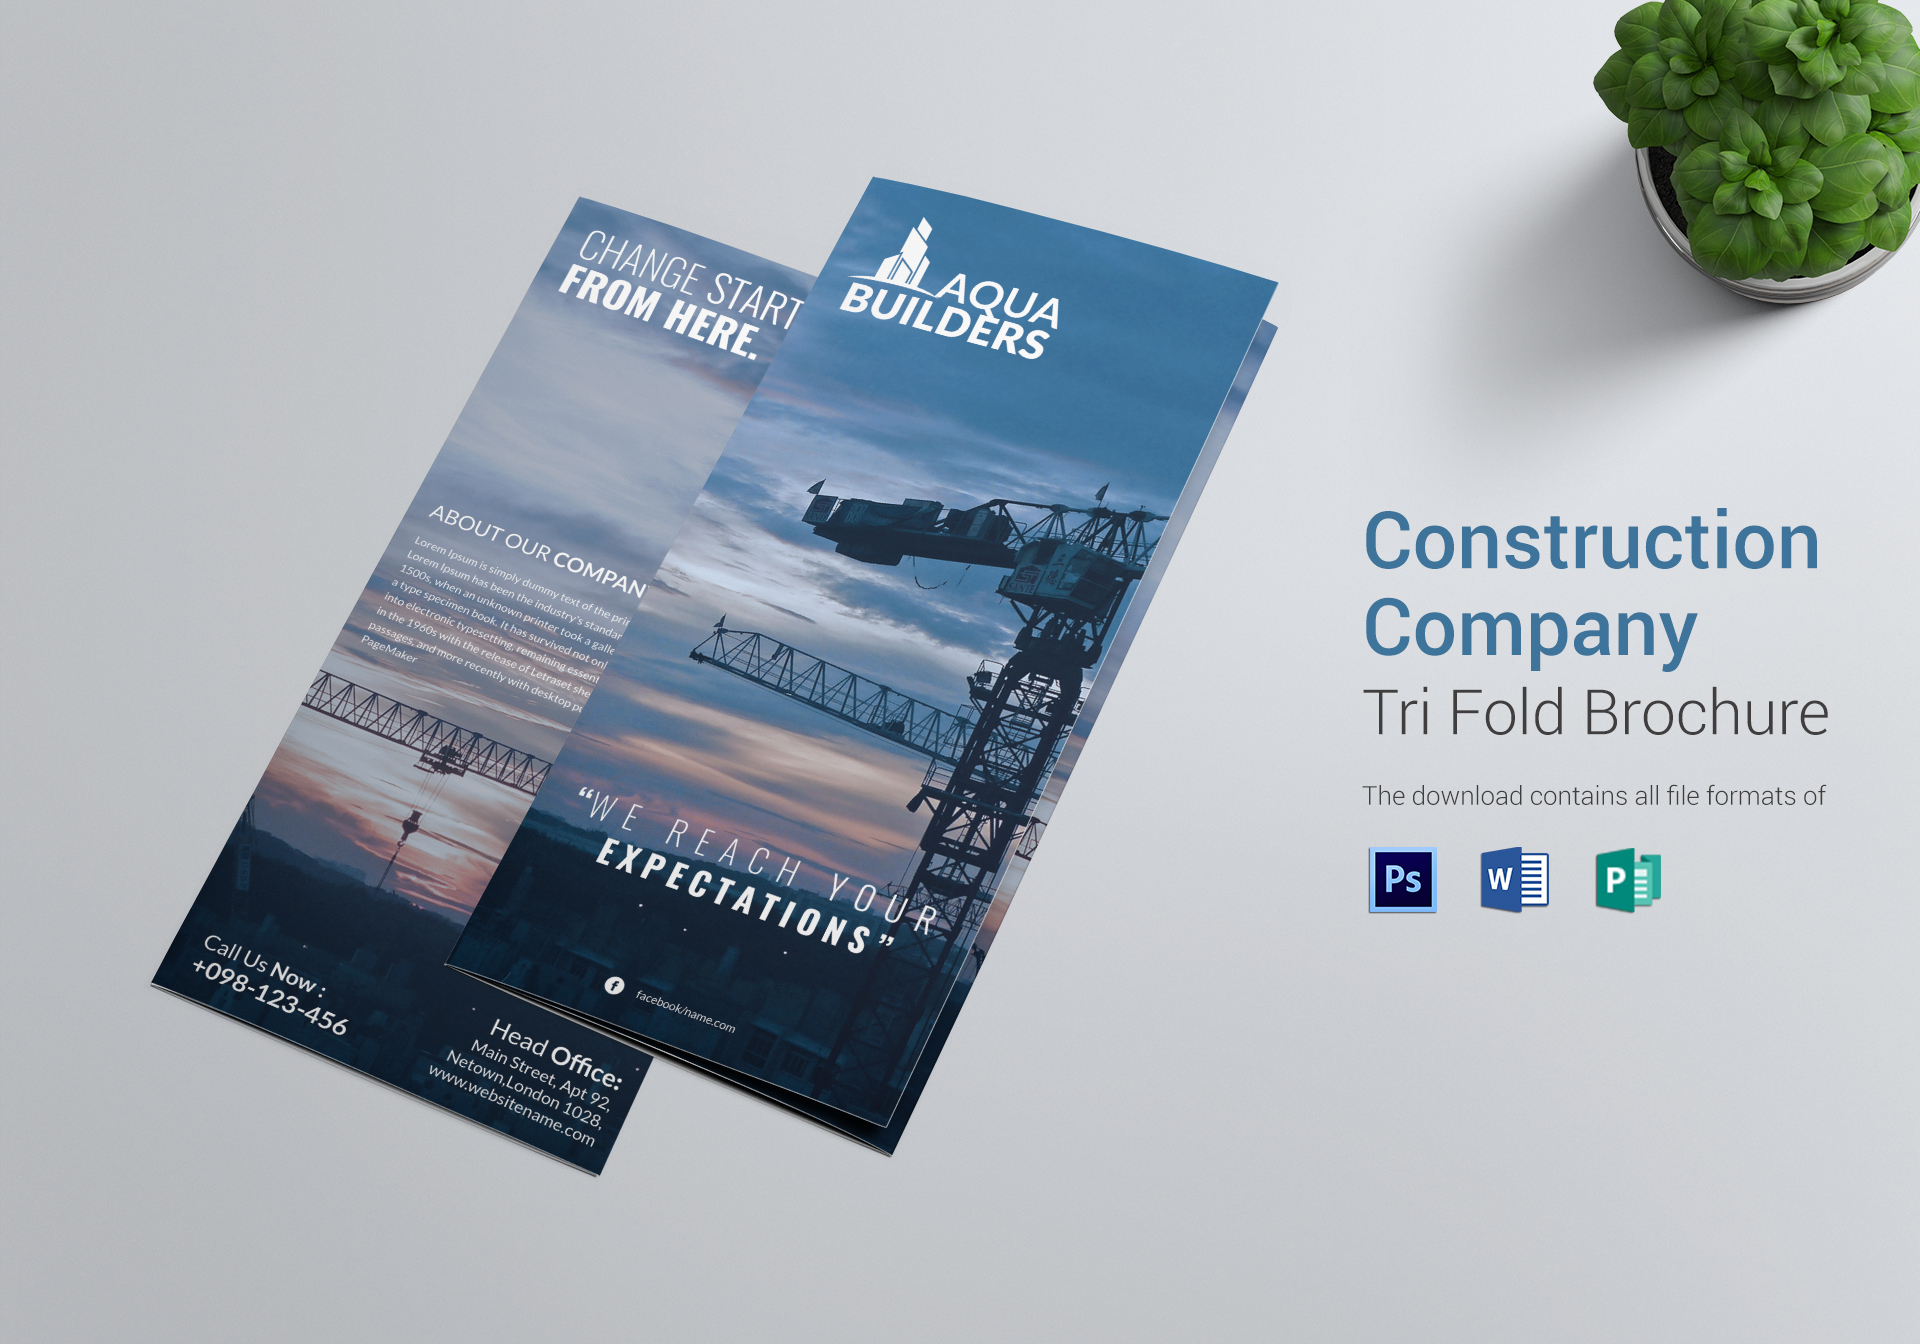 Construction company tri fold brochure design template in for Company brochure template